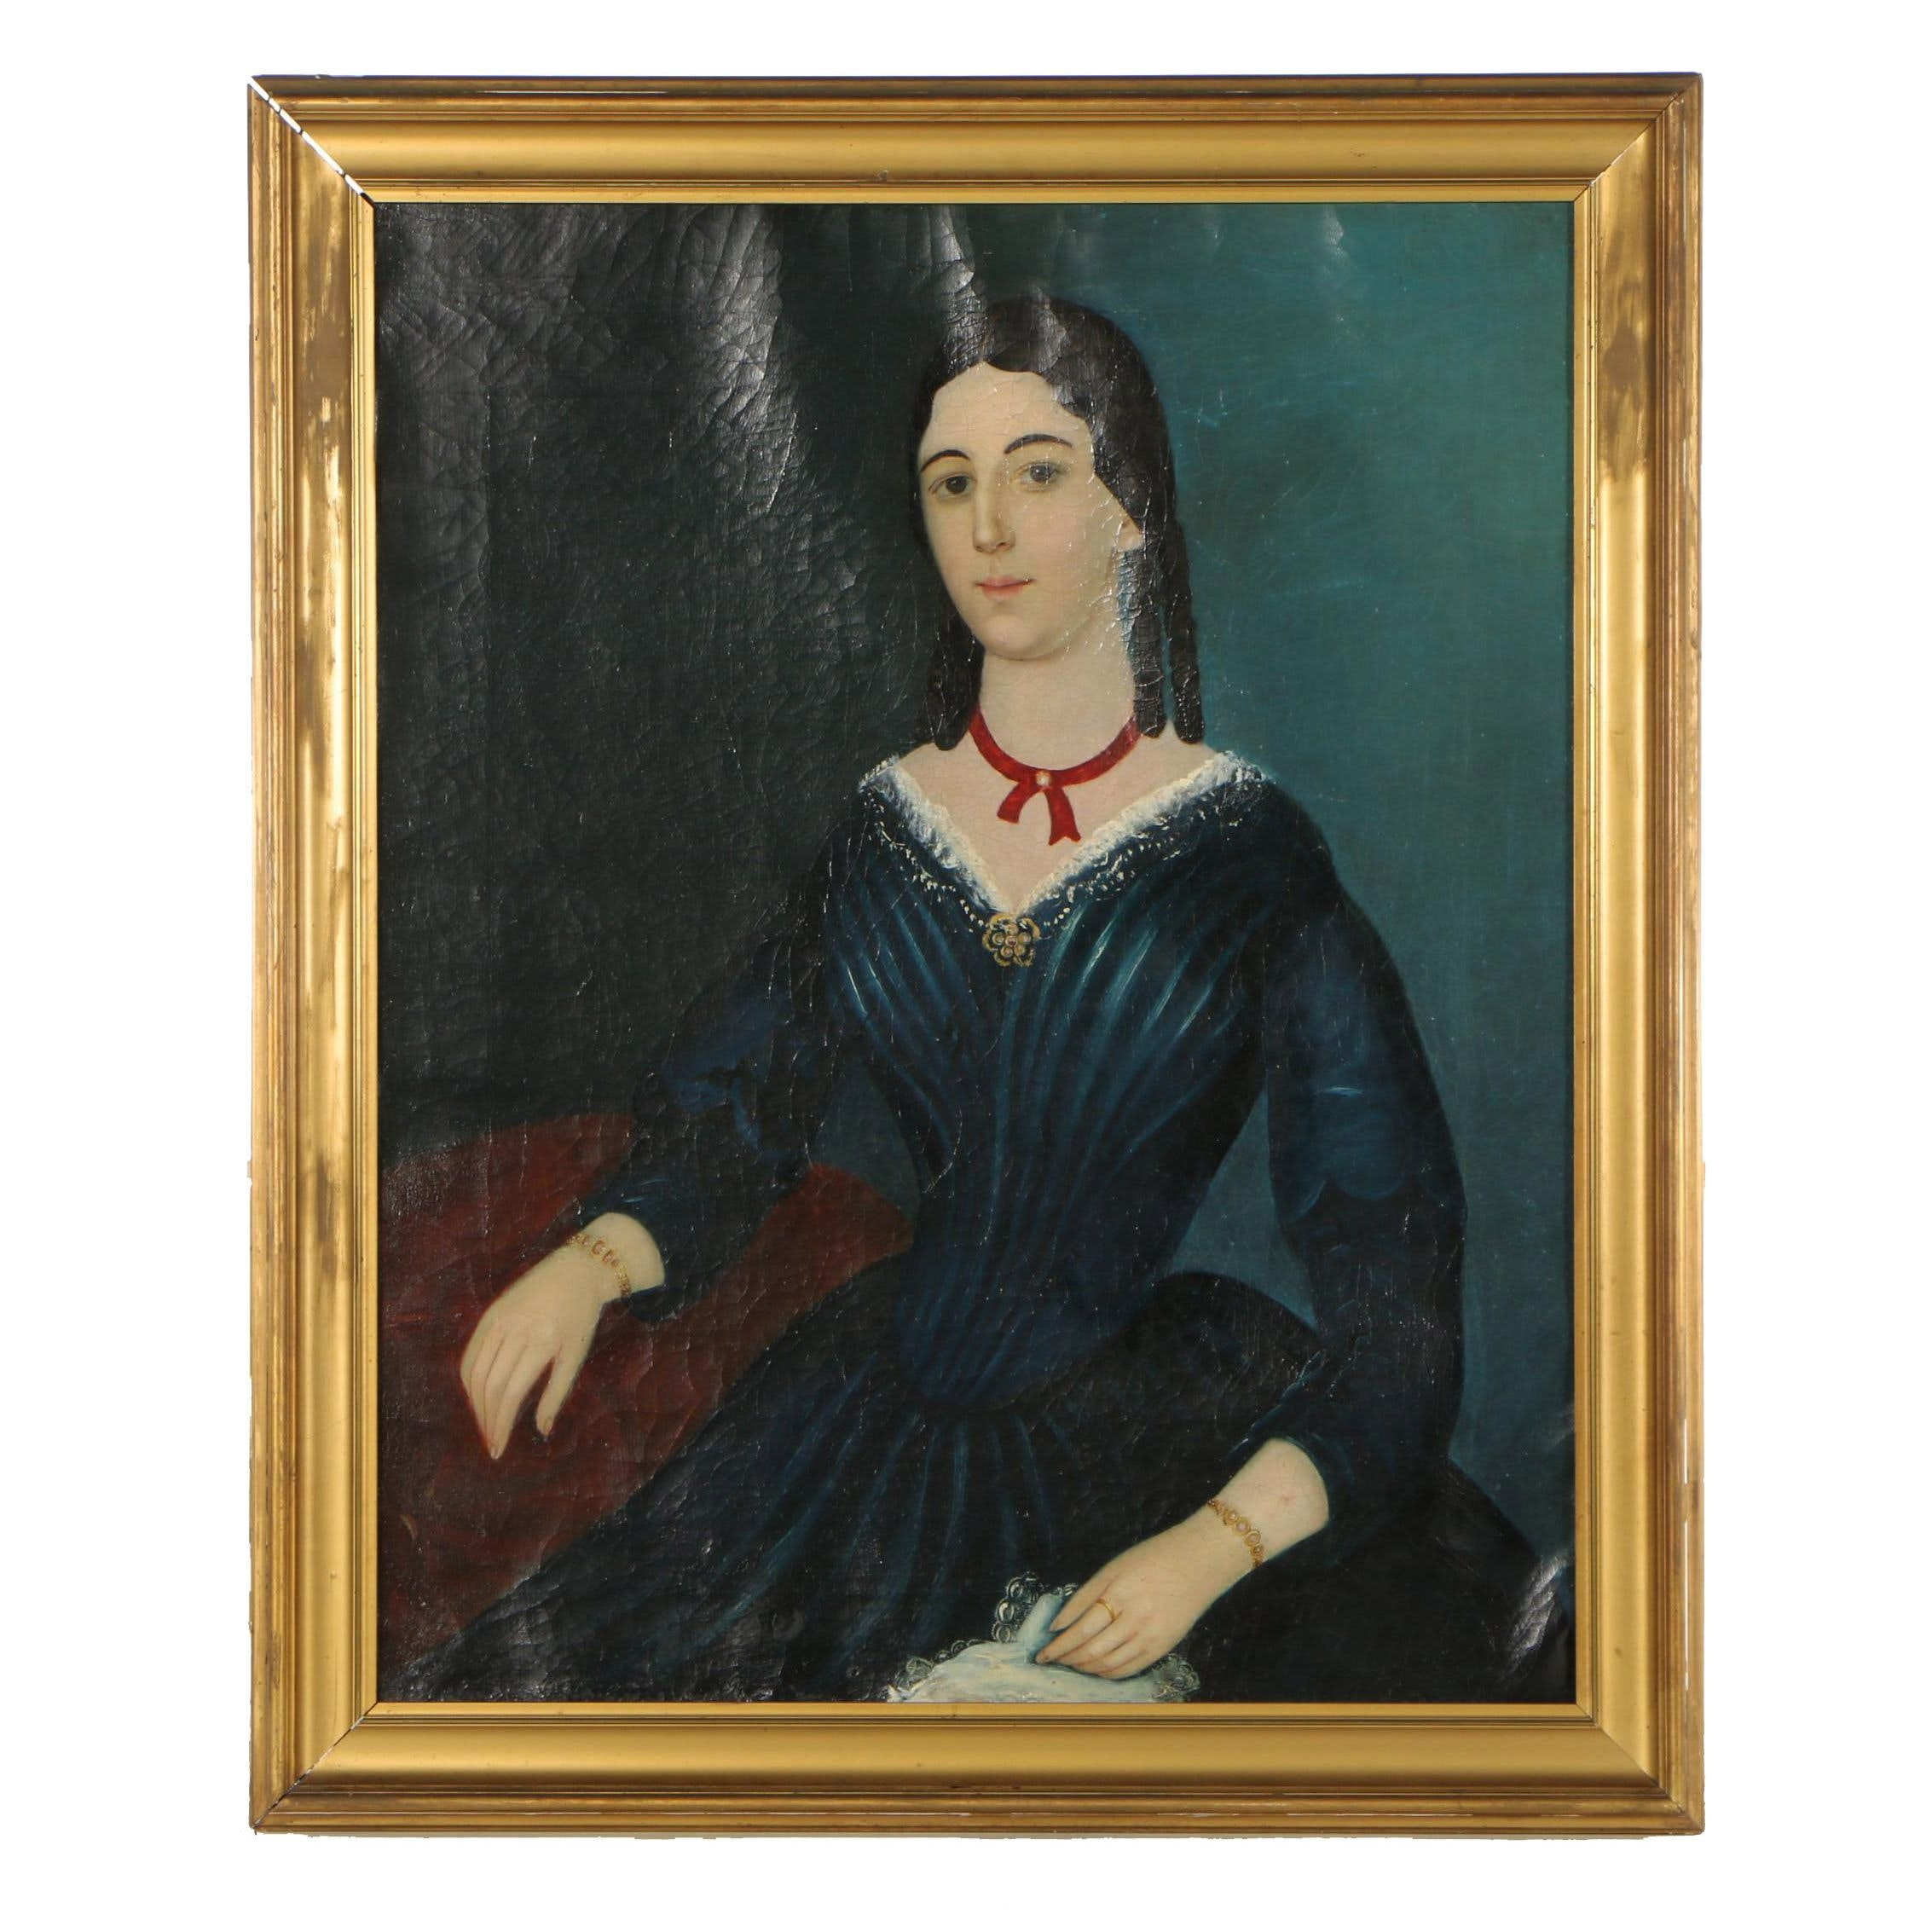 American School, Portrait of a Lady, Oil Painting, Late 18th Century